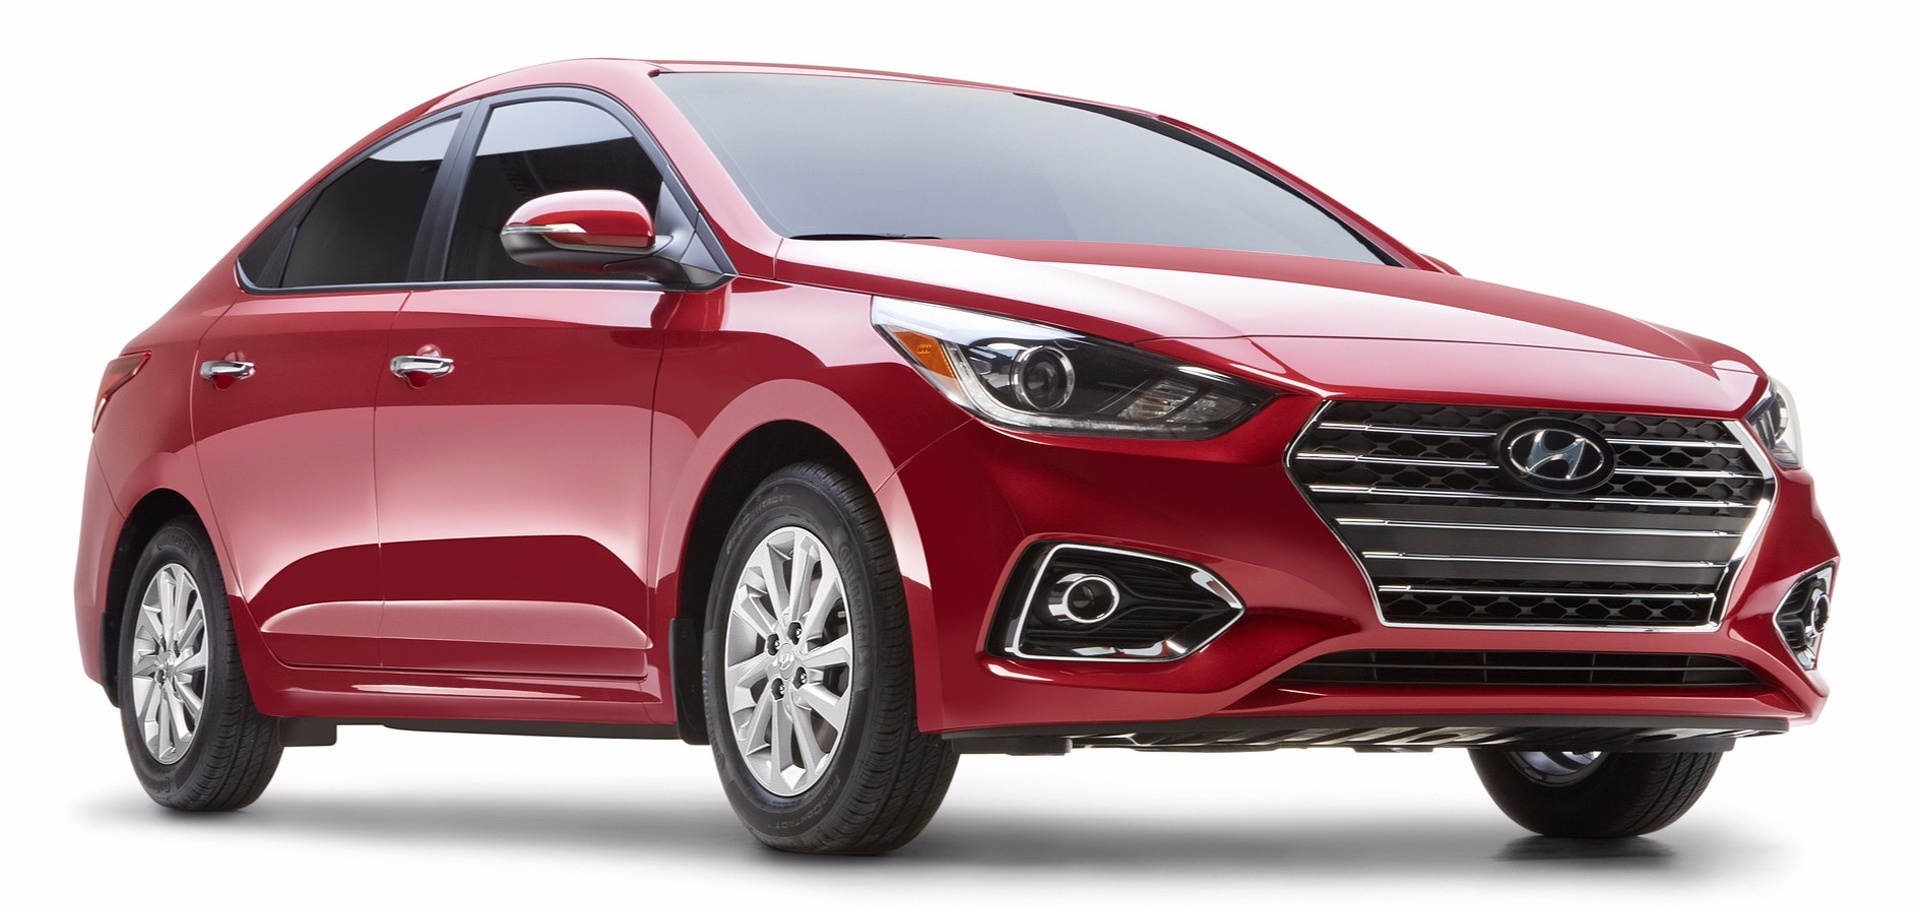 2018 hyundai accent fifth gen compact makes debut. Black Bedroom Furniture Sets. Home Design Ideas